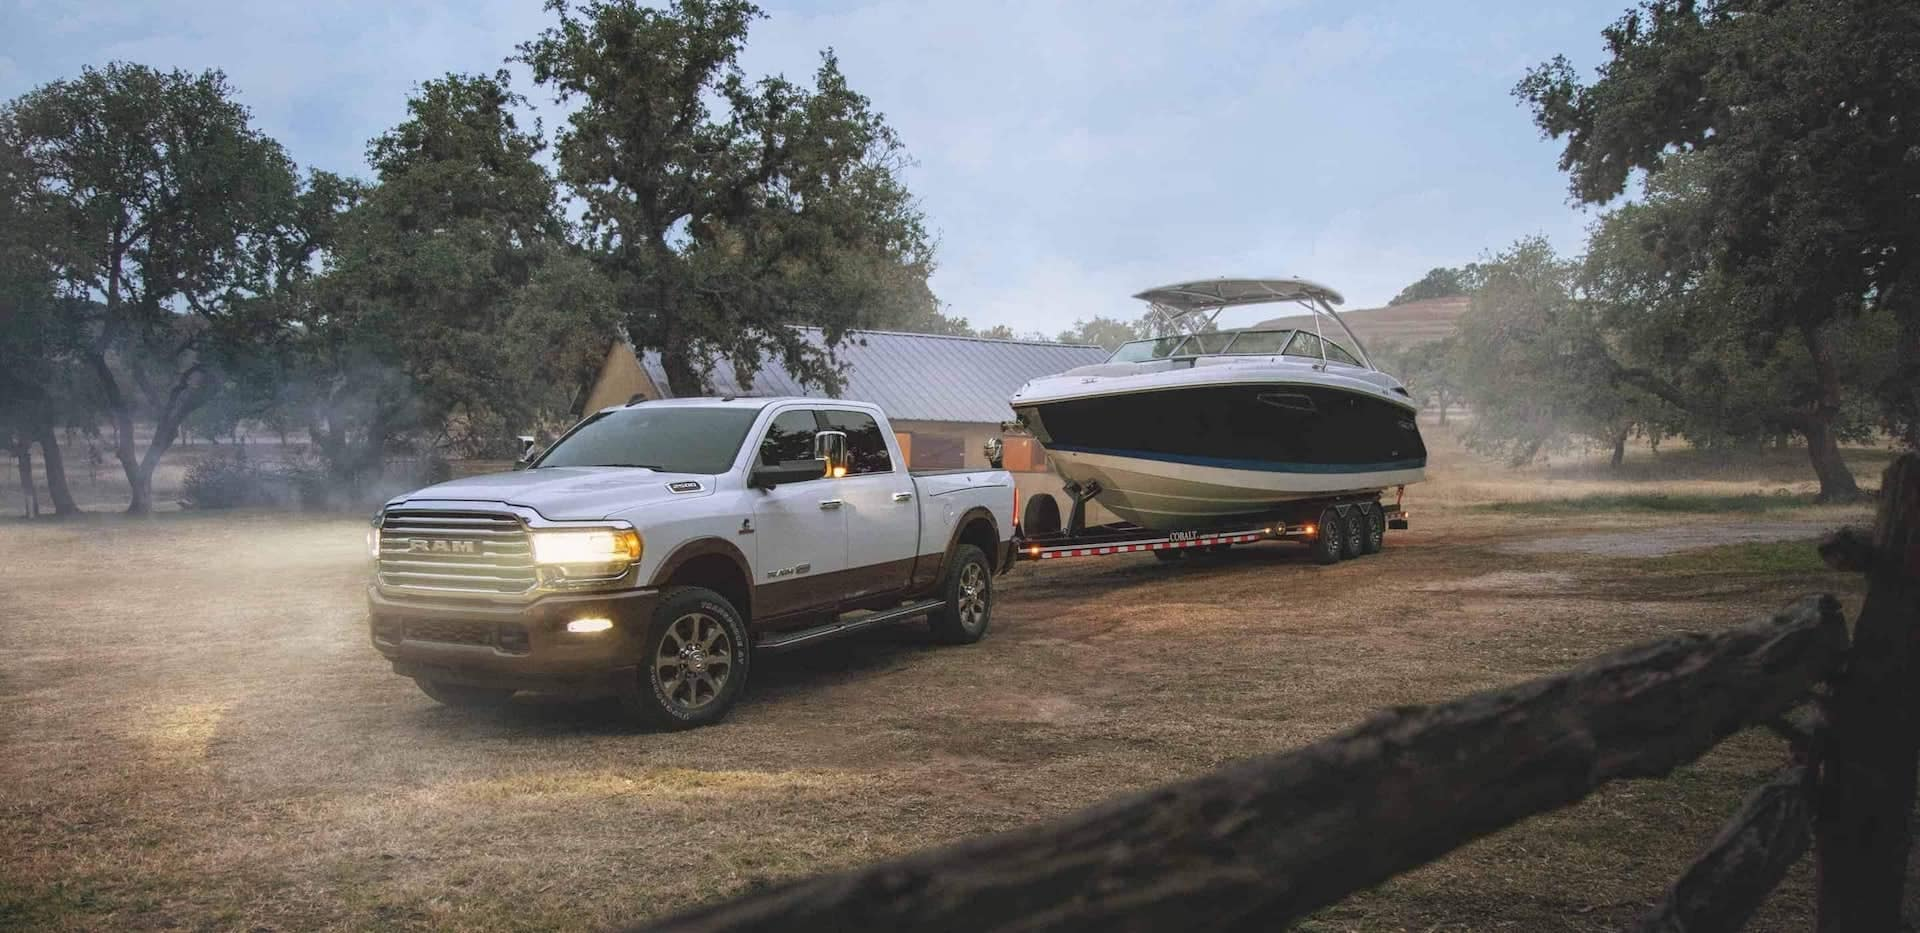 2020 RAM 2500 HD vs. 2020 Ford F-25